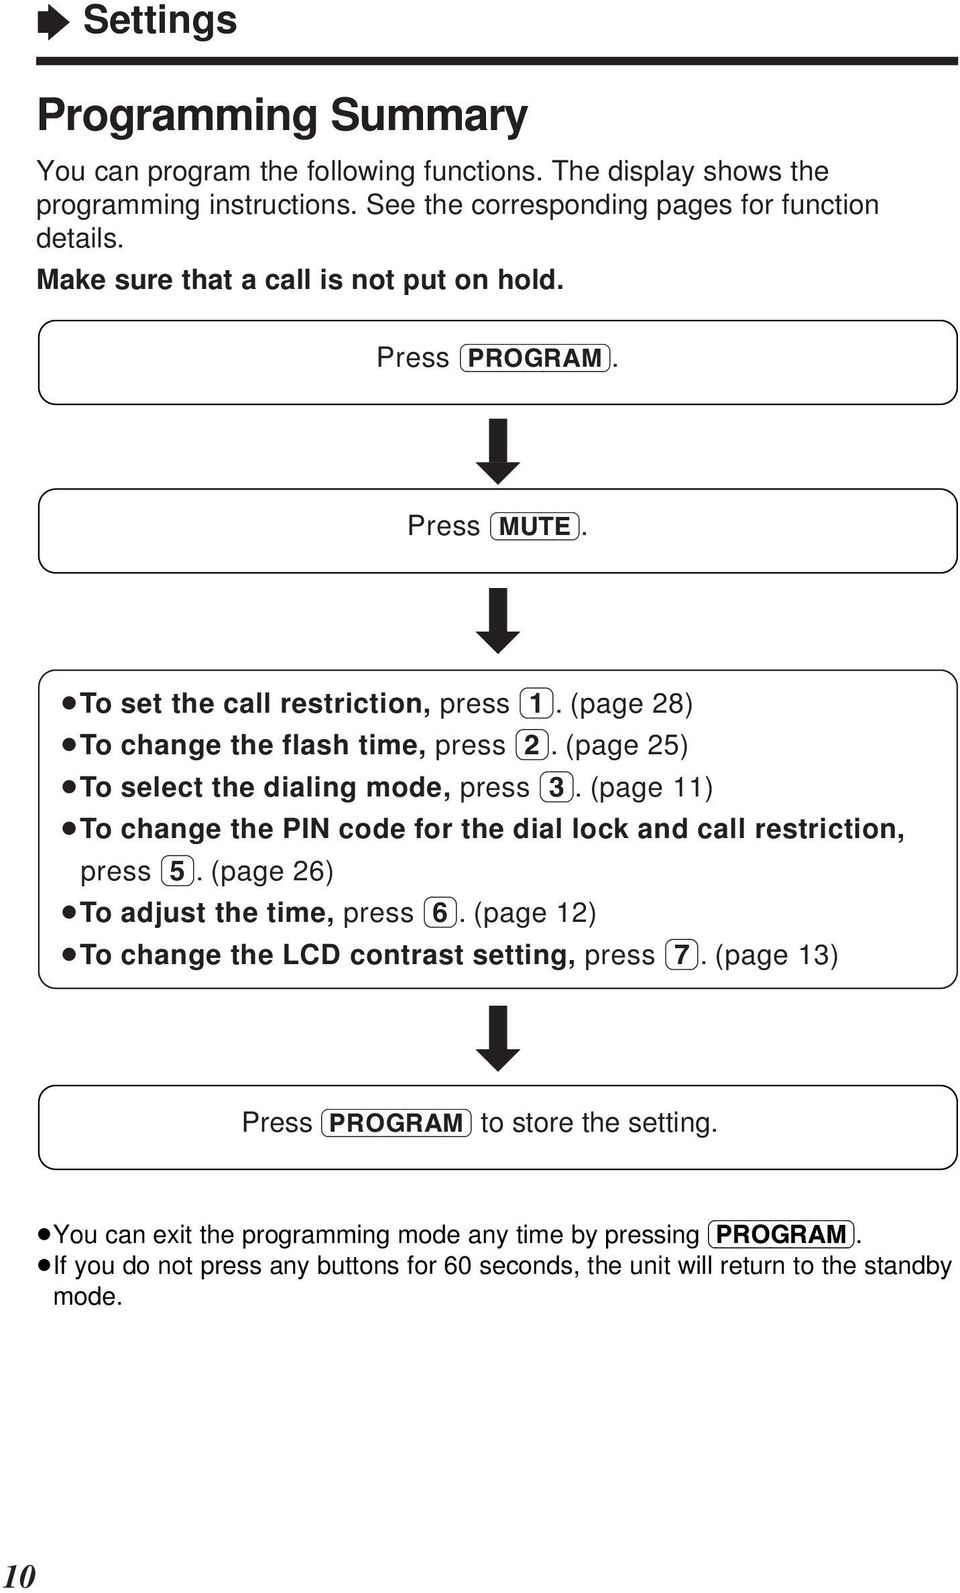 (page 5) To select the dialing mode, press (3). (page ) To change the PIN code for the dial lock and call restriction, press (5). (page 6) To adjust the time, press (6).